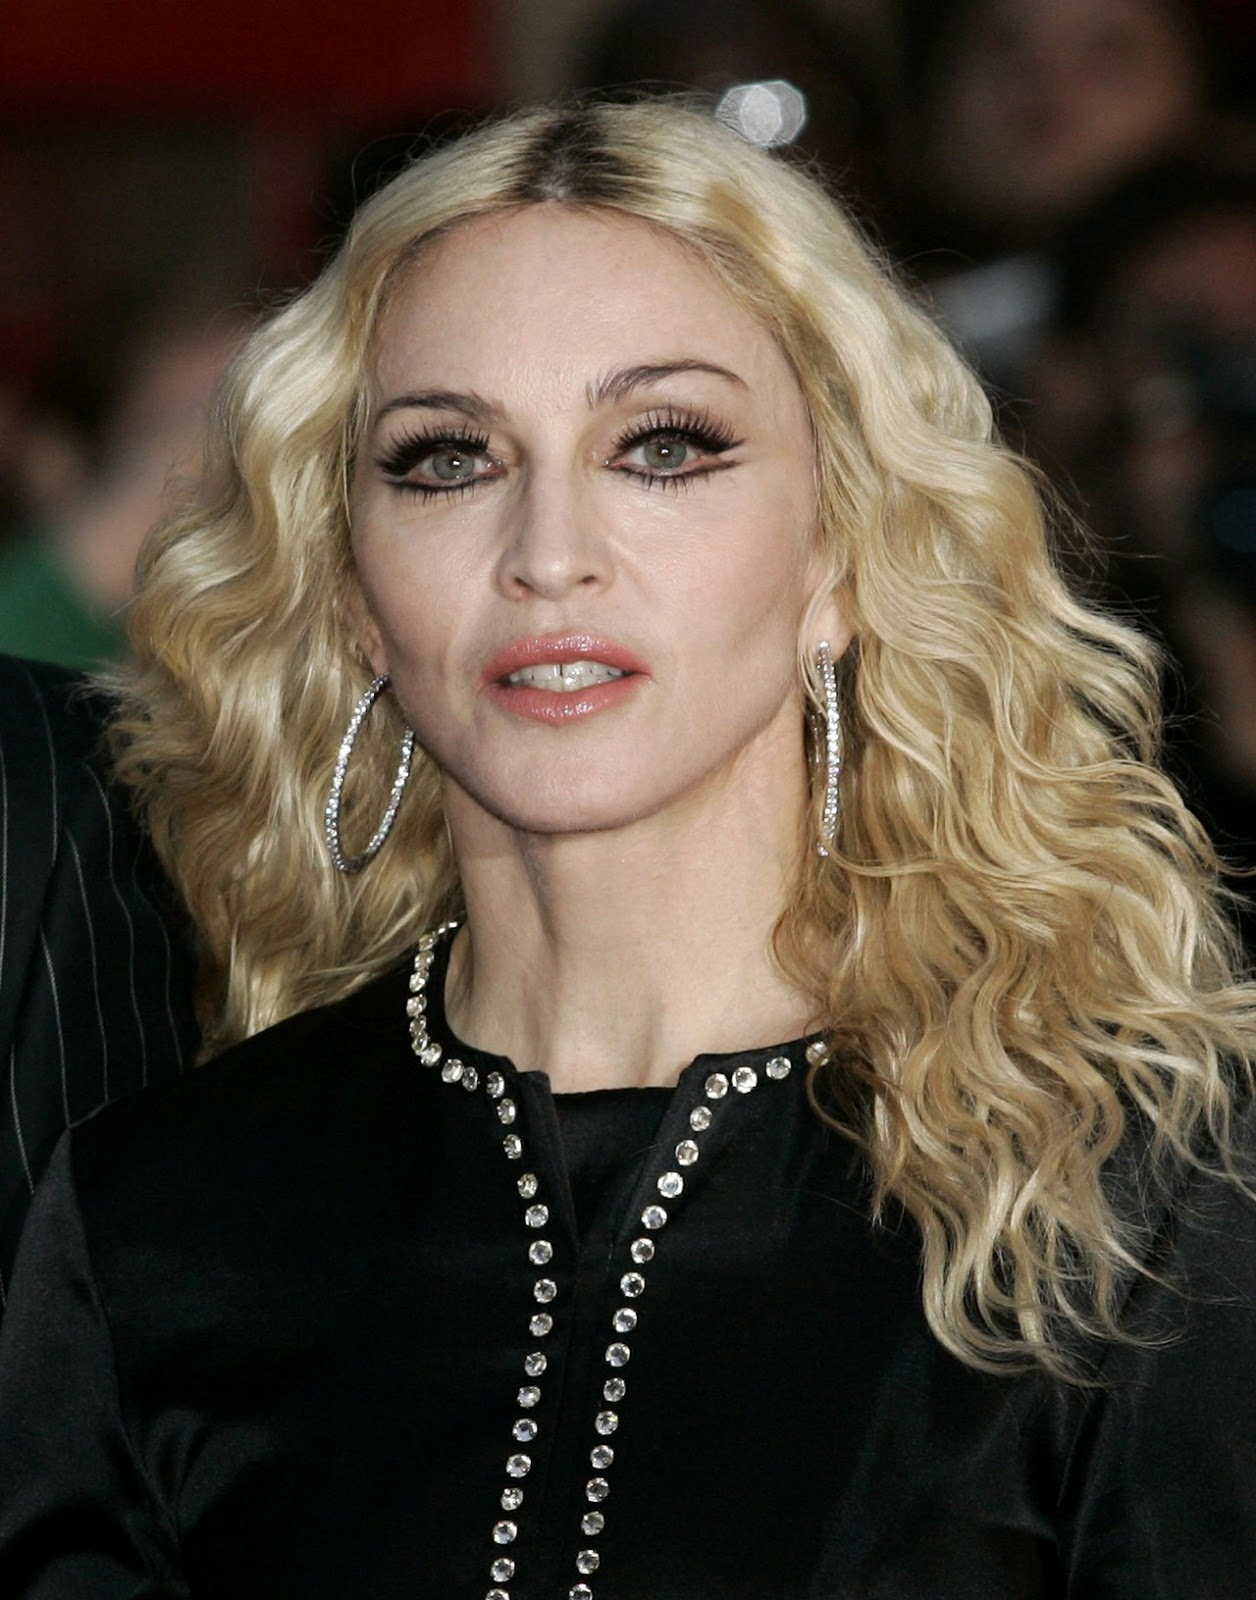 madonna makeup | Fashion Style Share